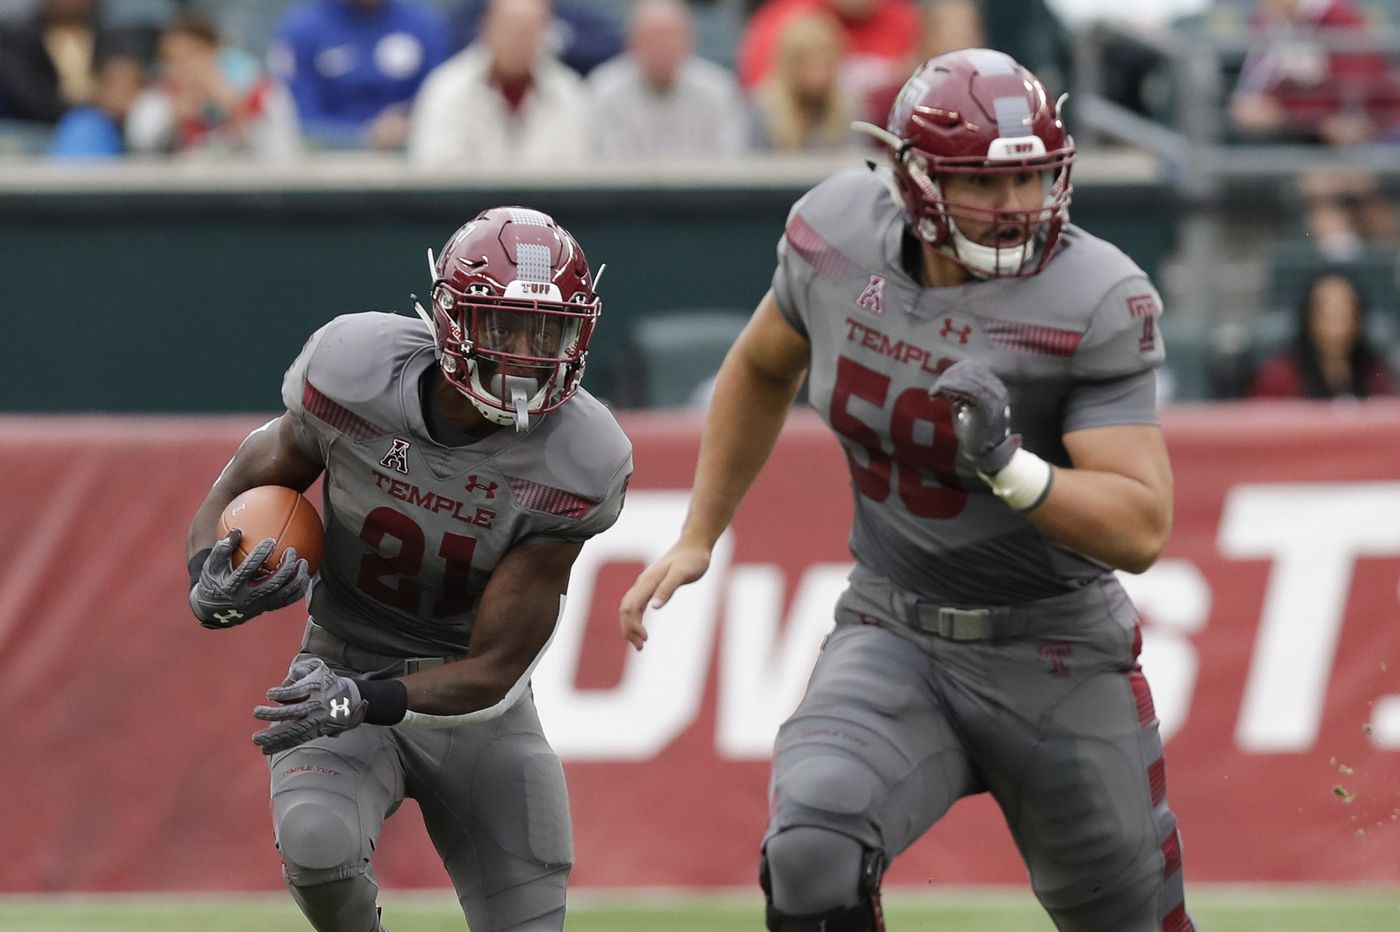 Temple center Matt Hennessy works equally hard at football and academics. The NFL is next.